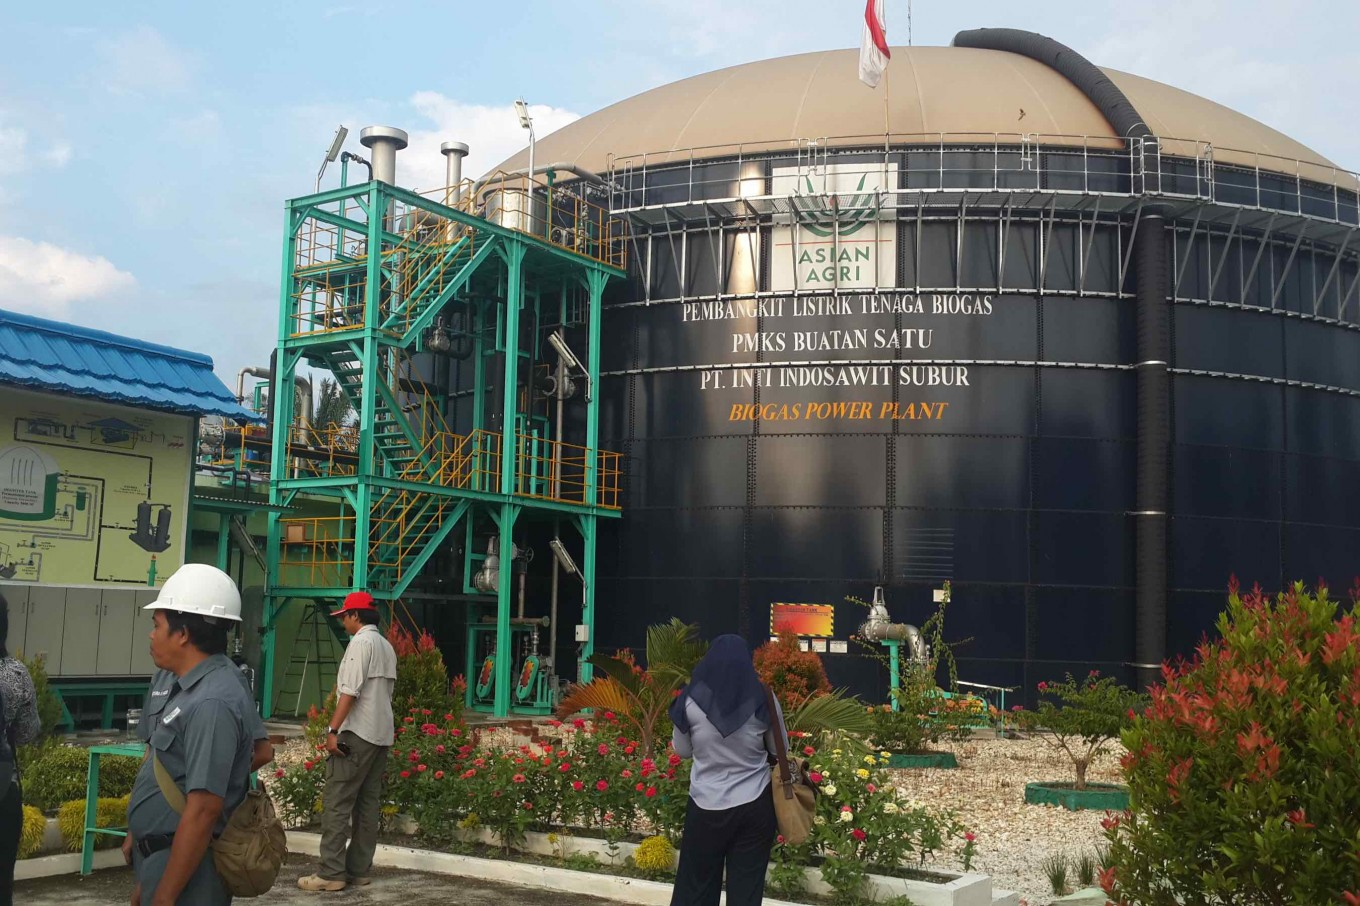 Asian Agri to optimize excess supply from biogas power plants